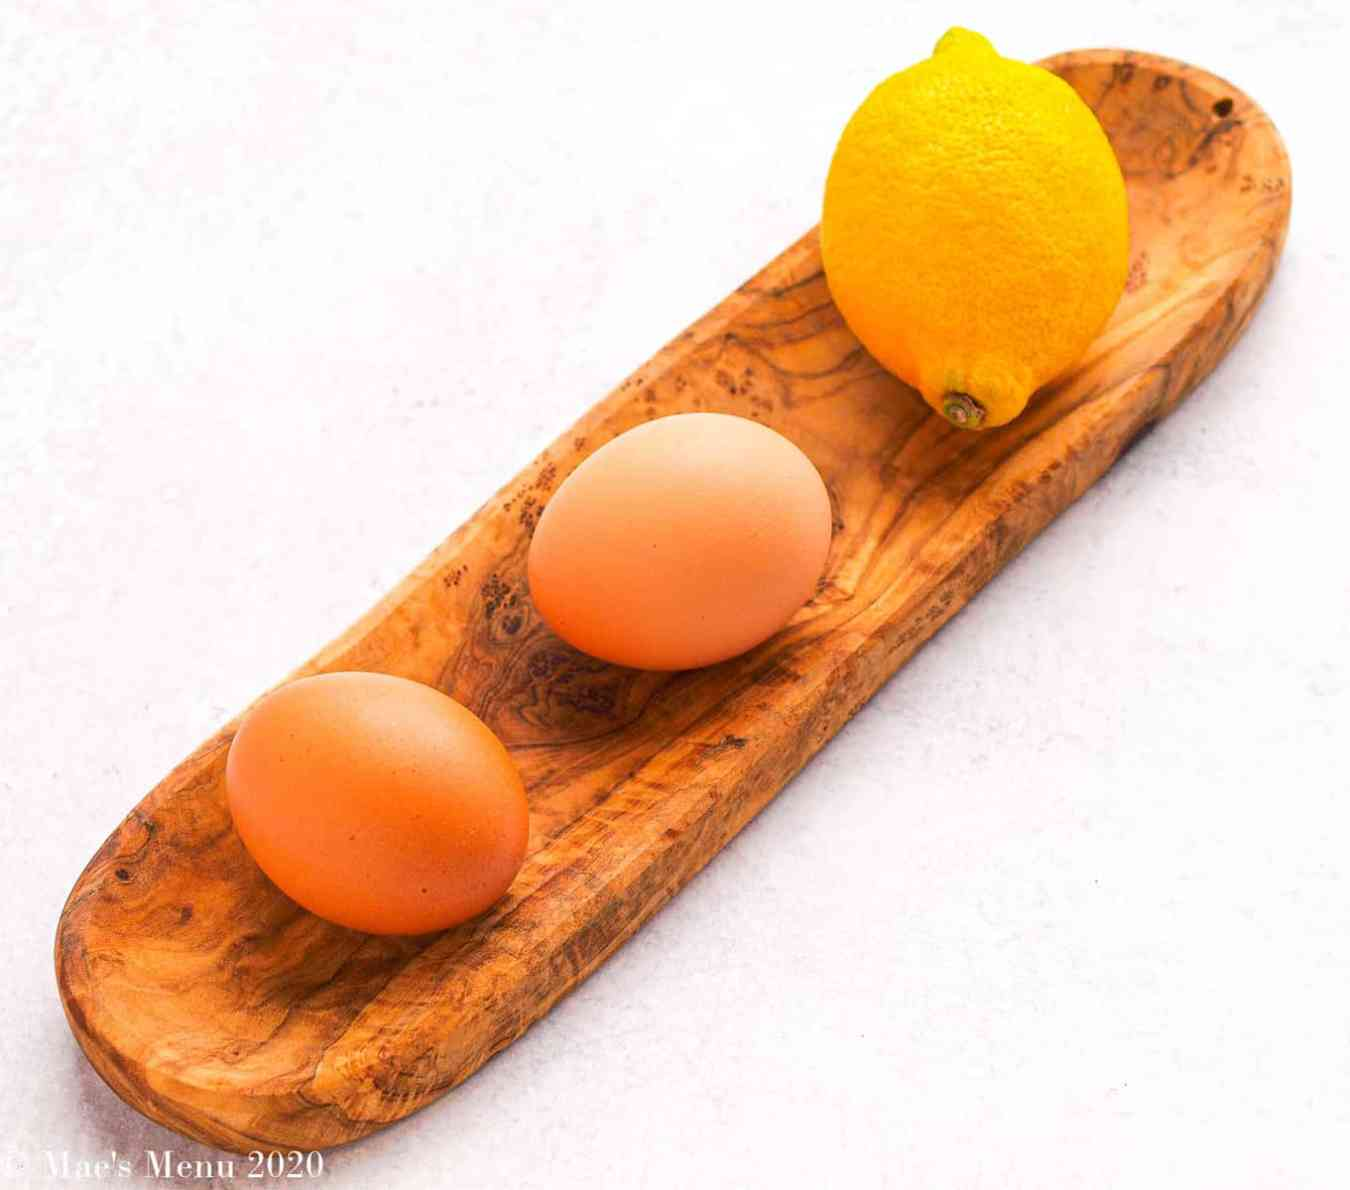 Two eggs and a lemon on a small & long wooden tray.